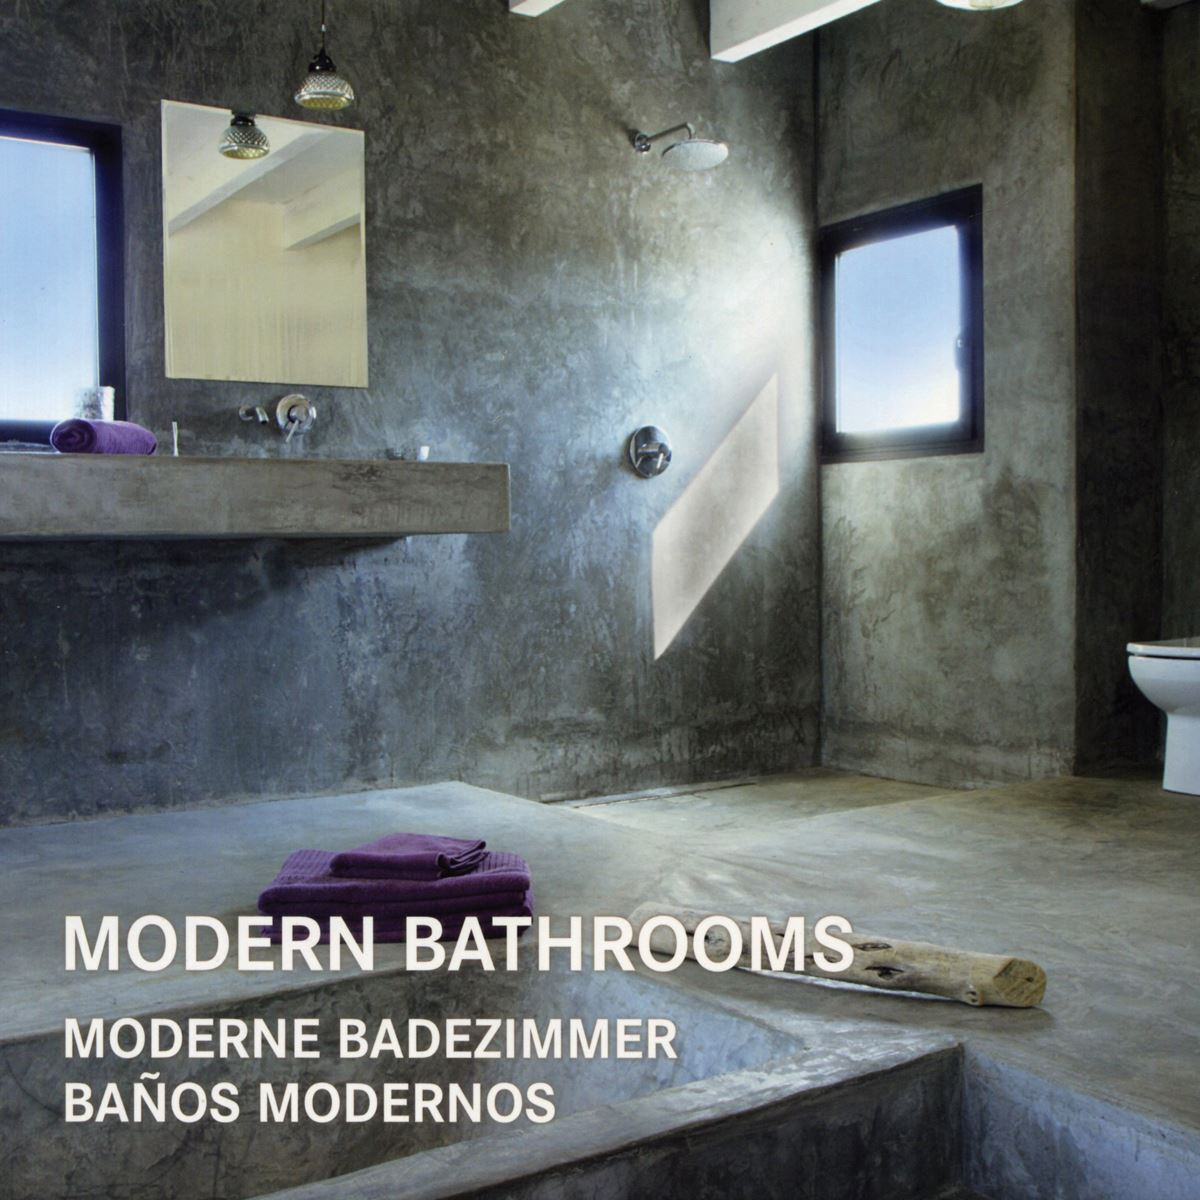 Modern bathrooms – Konemann